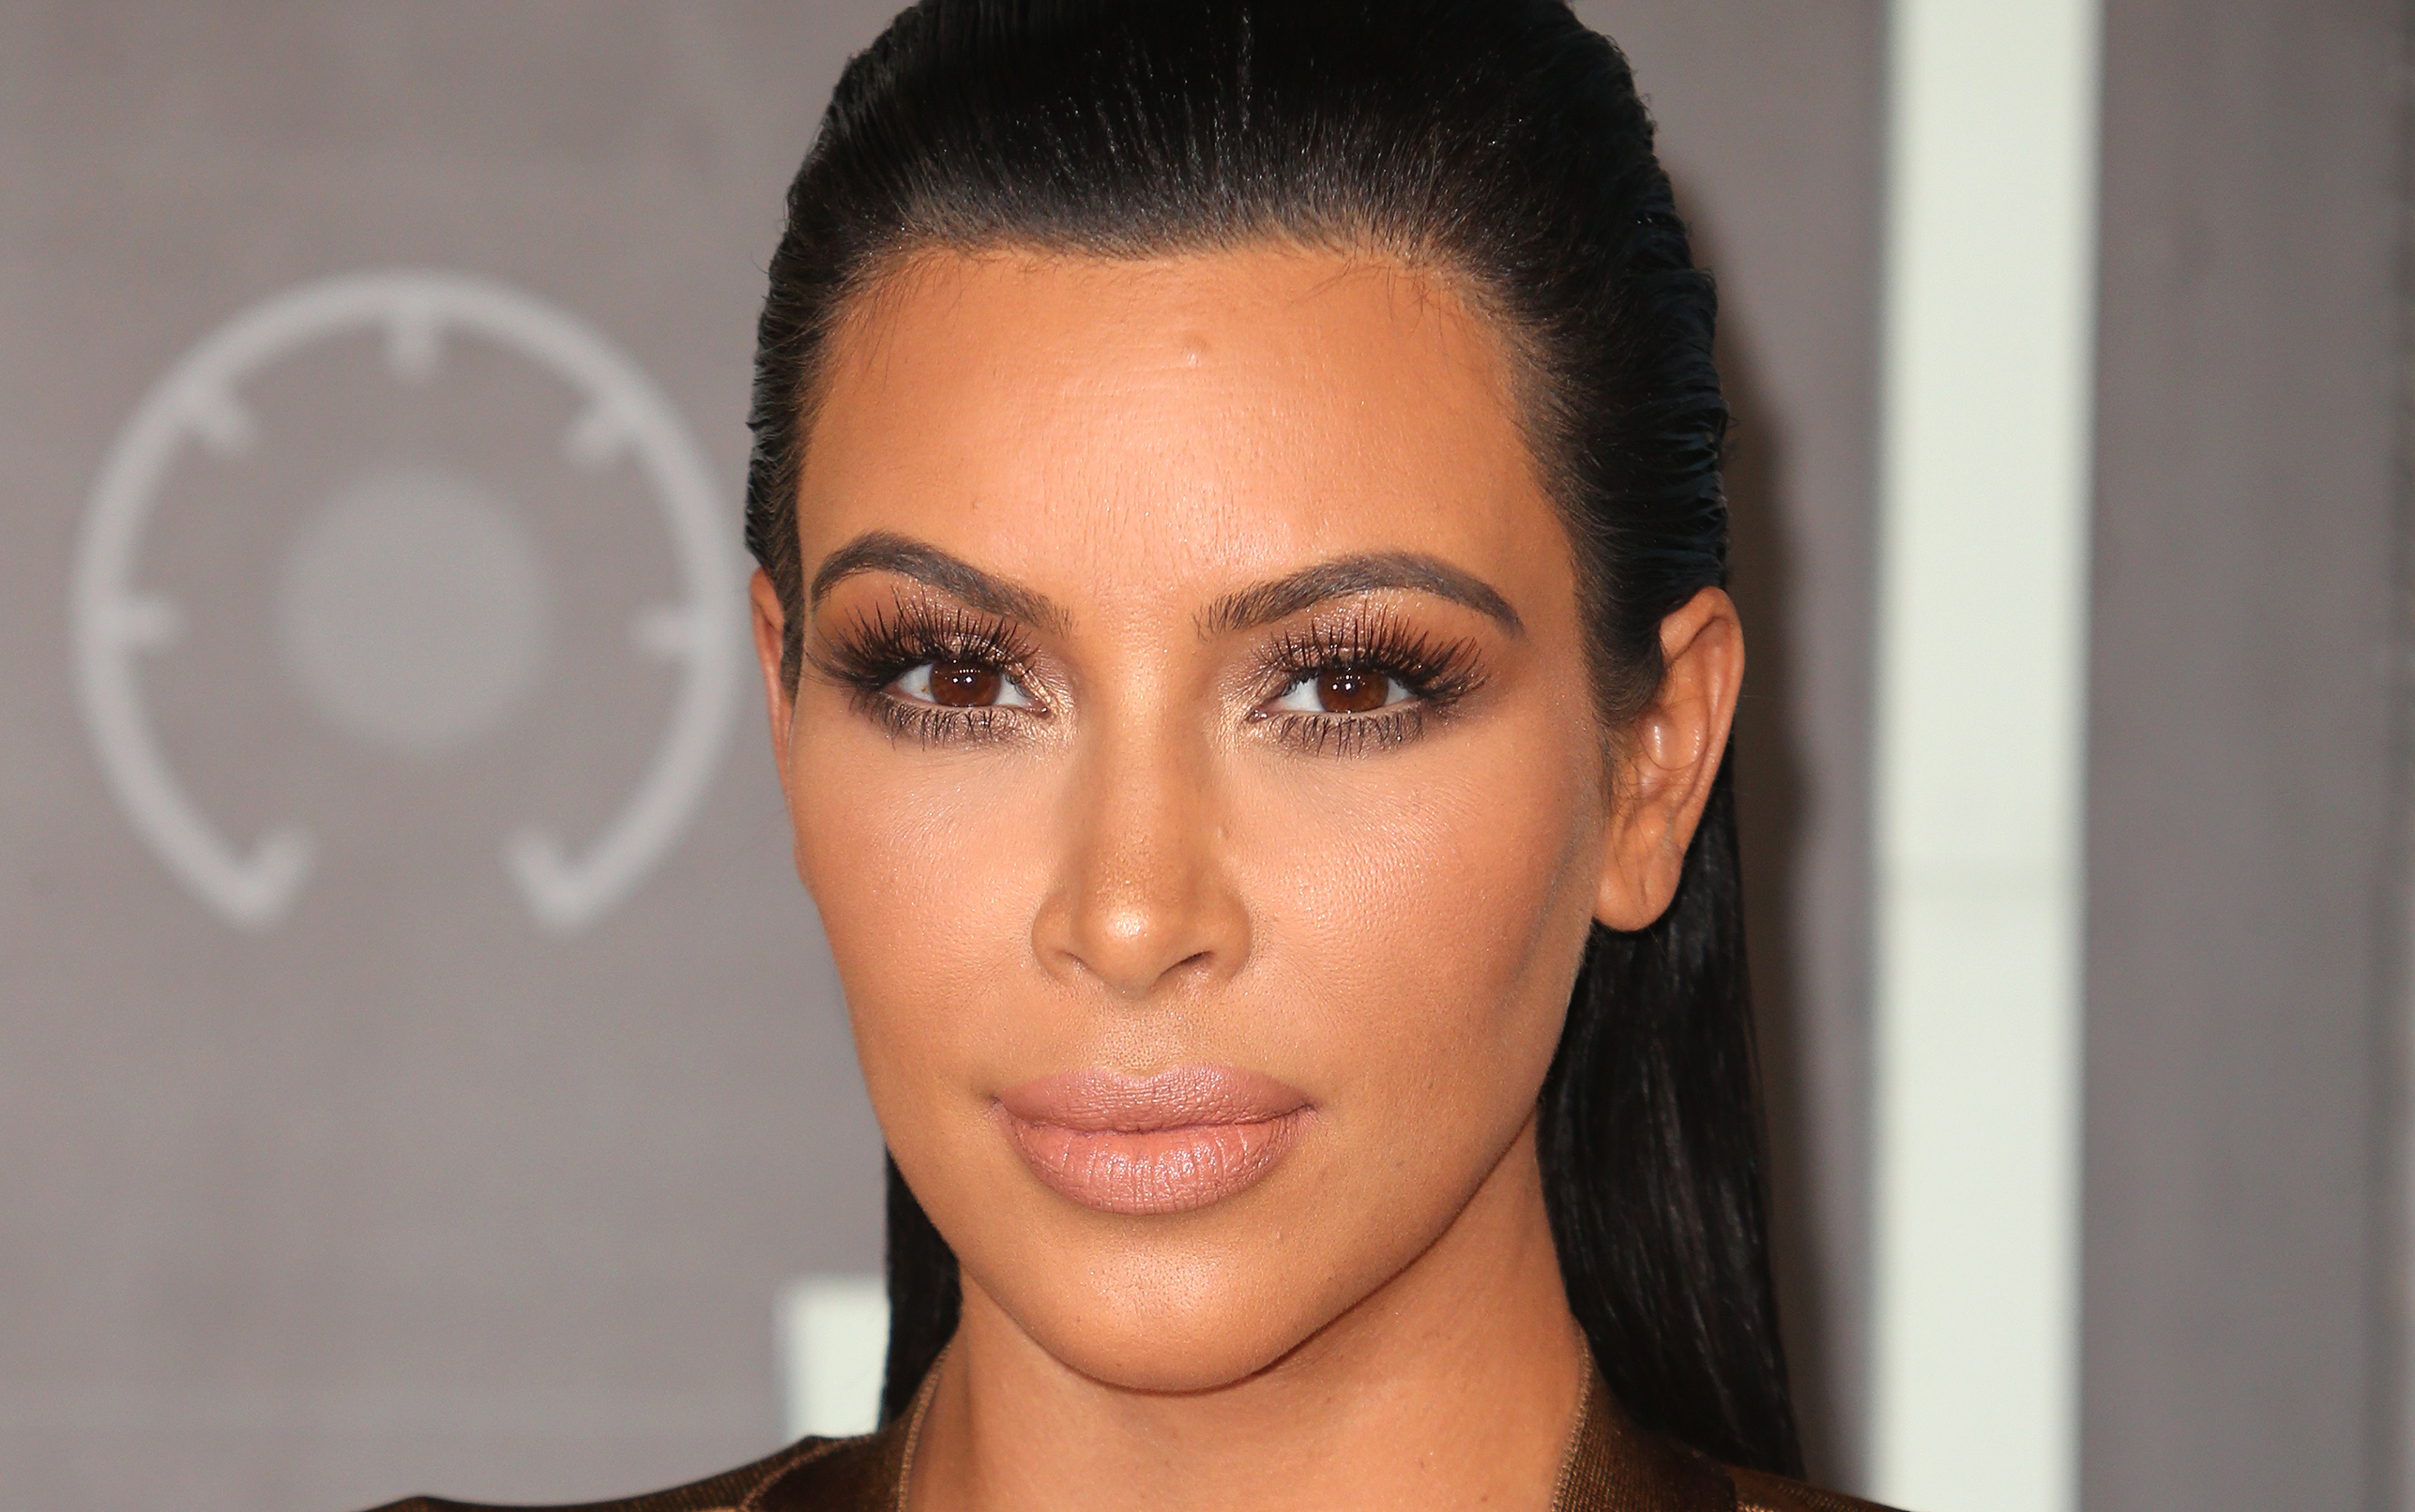 17 People Arrested in Connection with Kim Kardashian Robbery